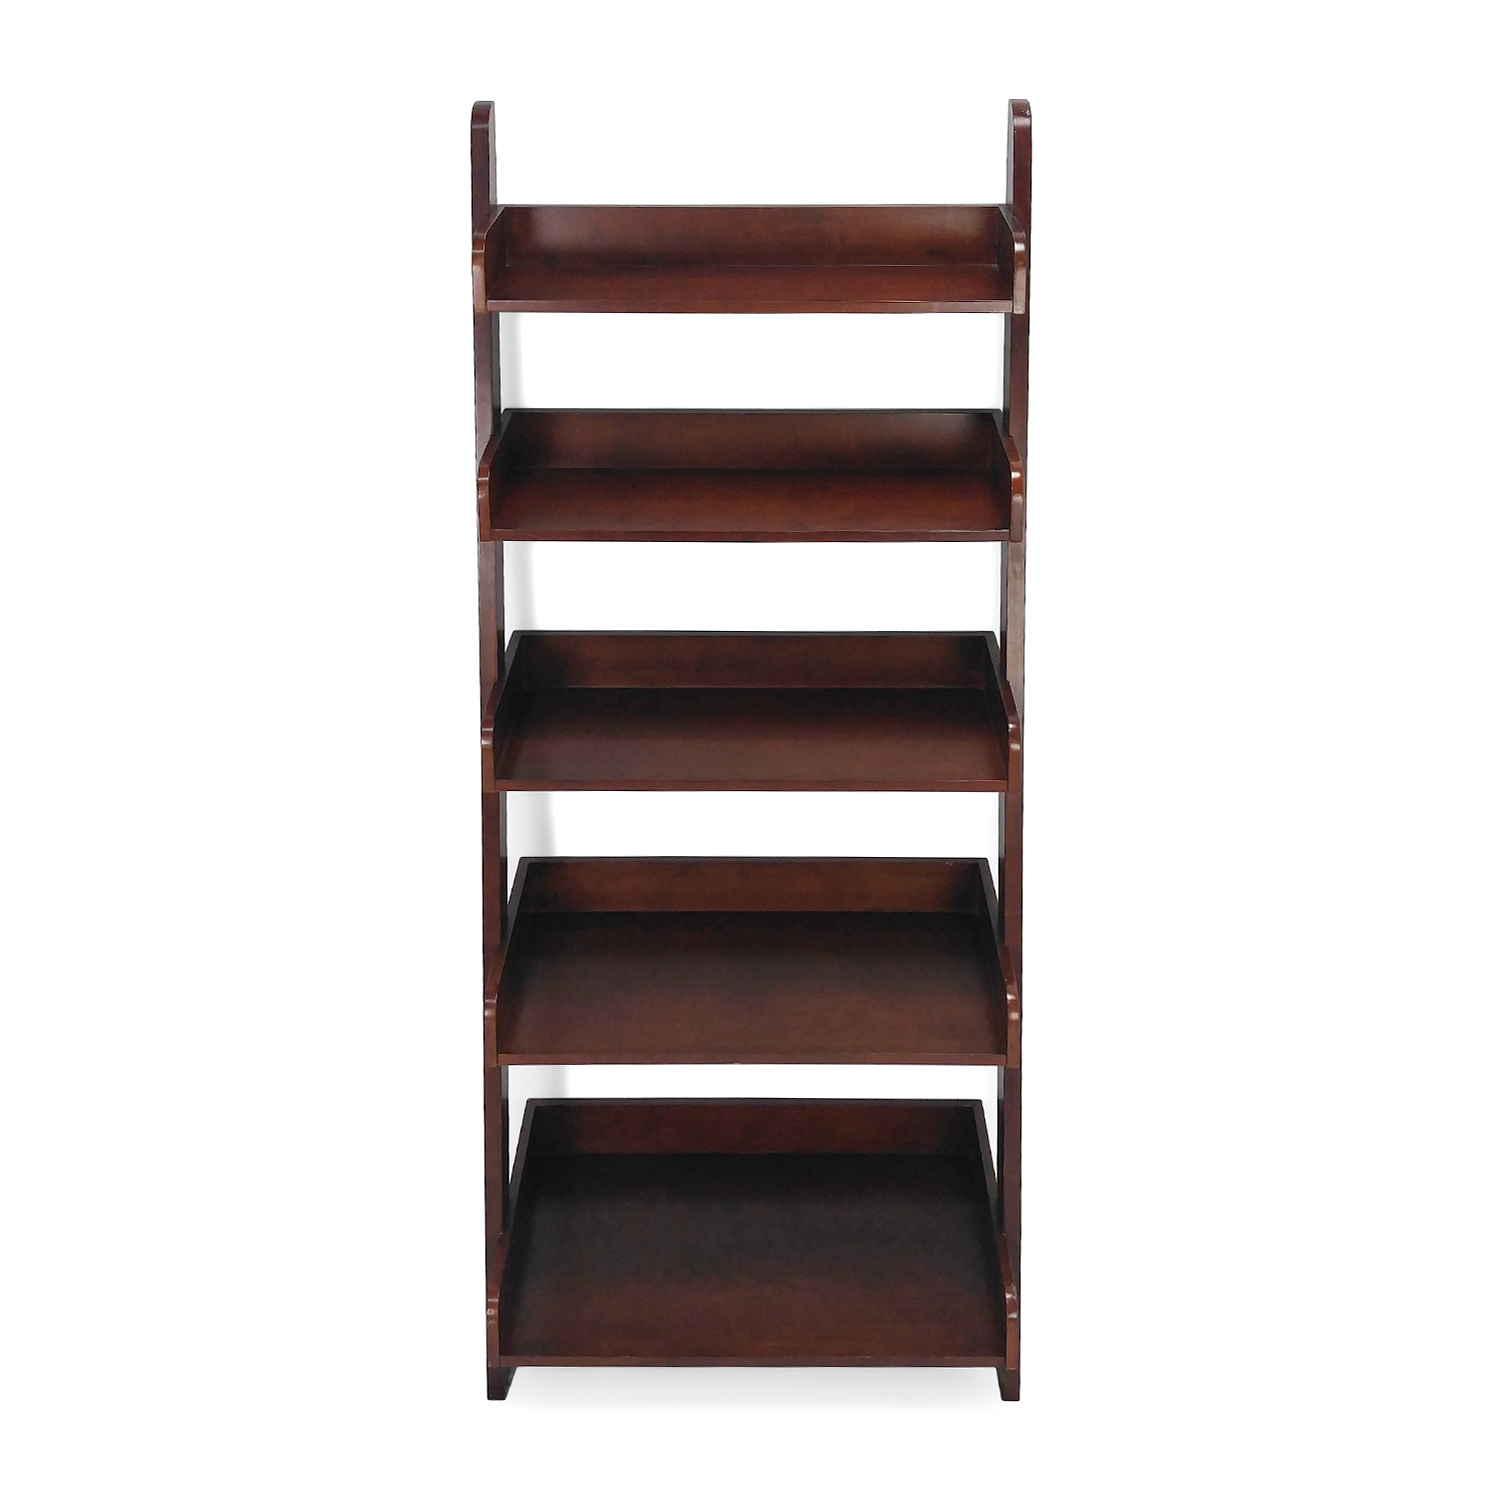 Unknown Brand Leaning Wood Shelves dimensions